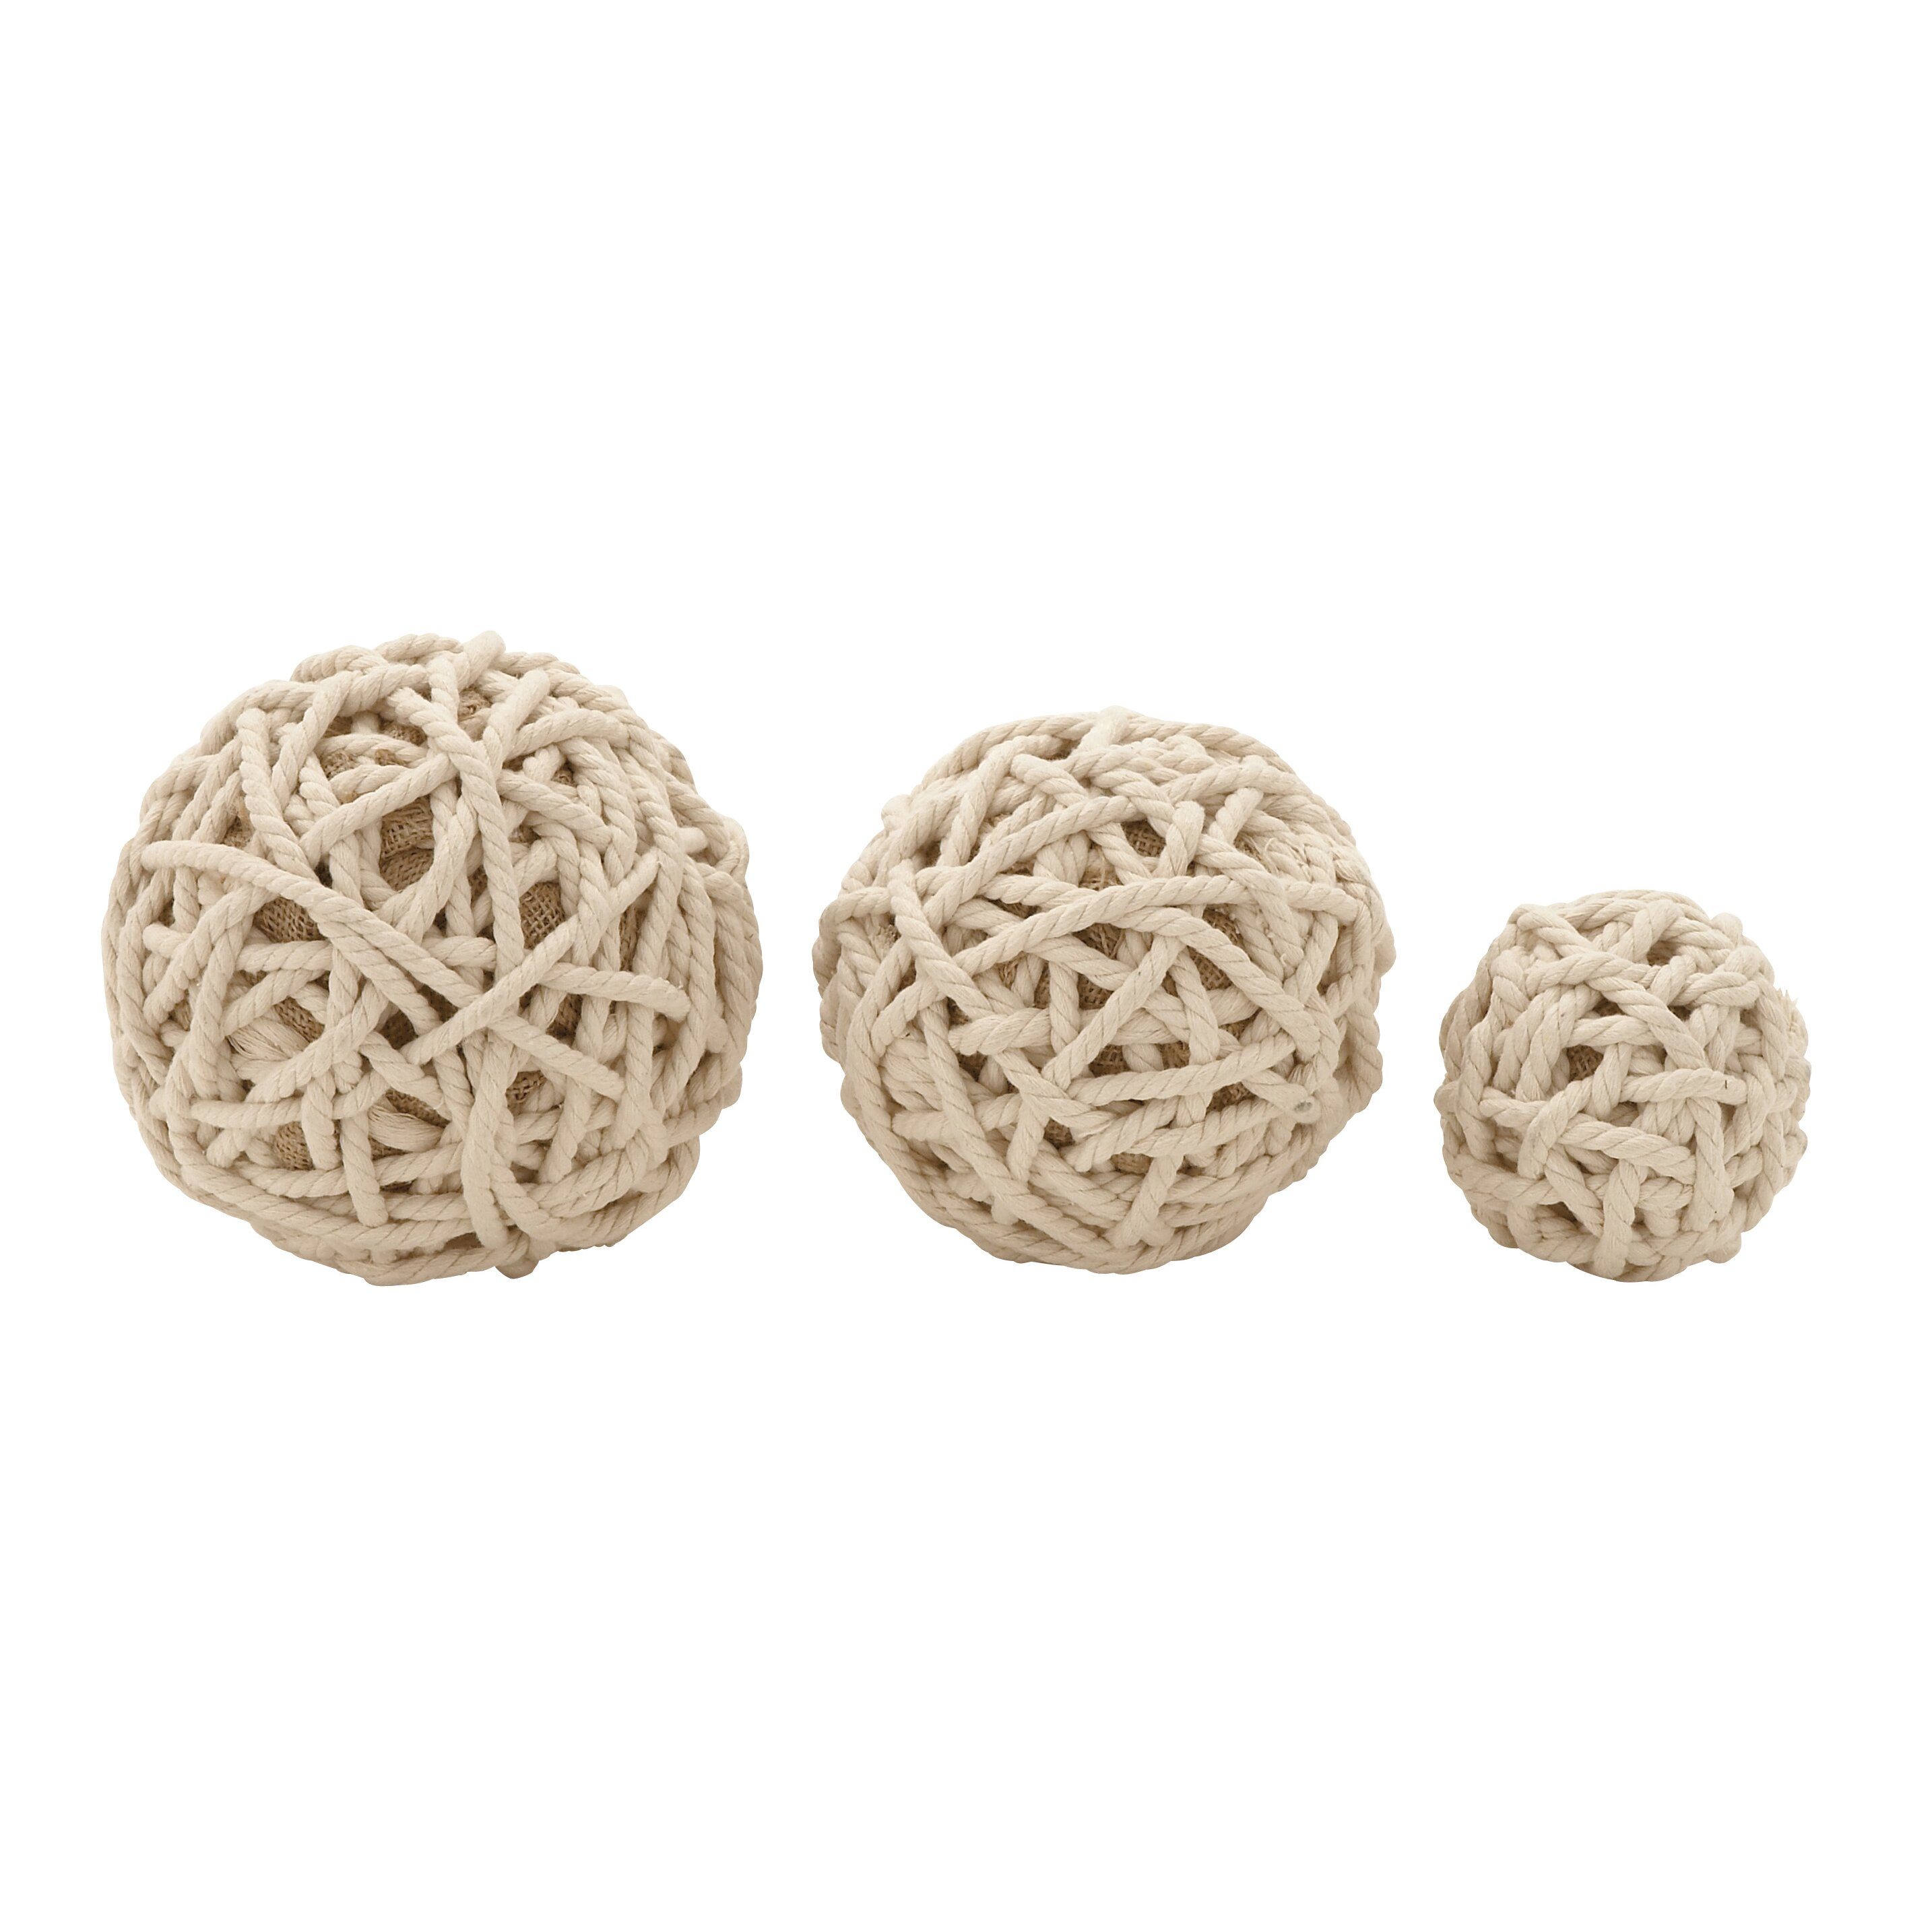 how to make a decorative rope ball